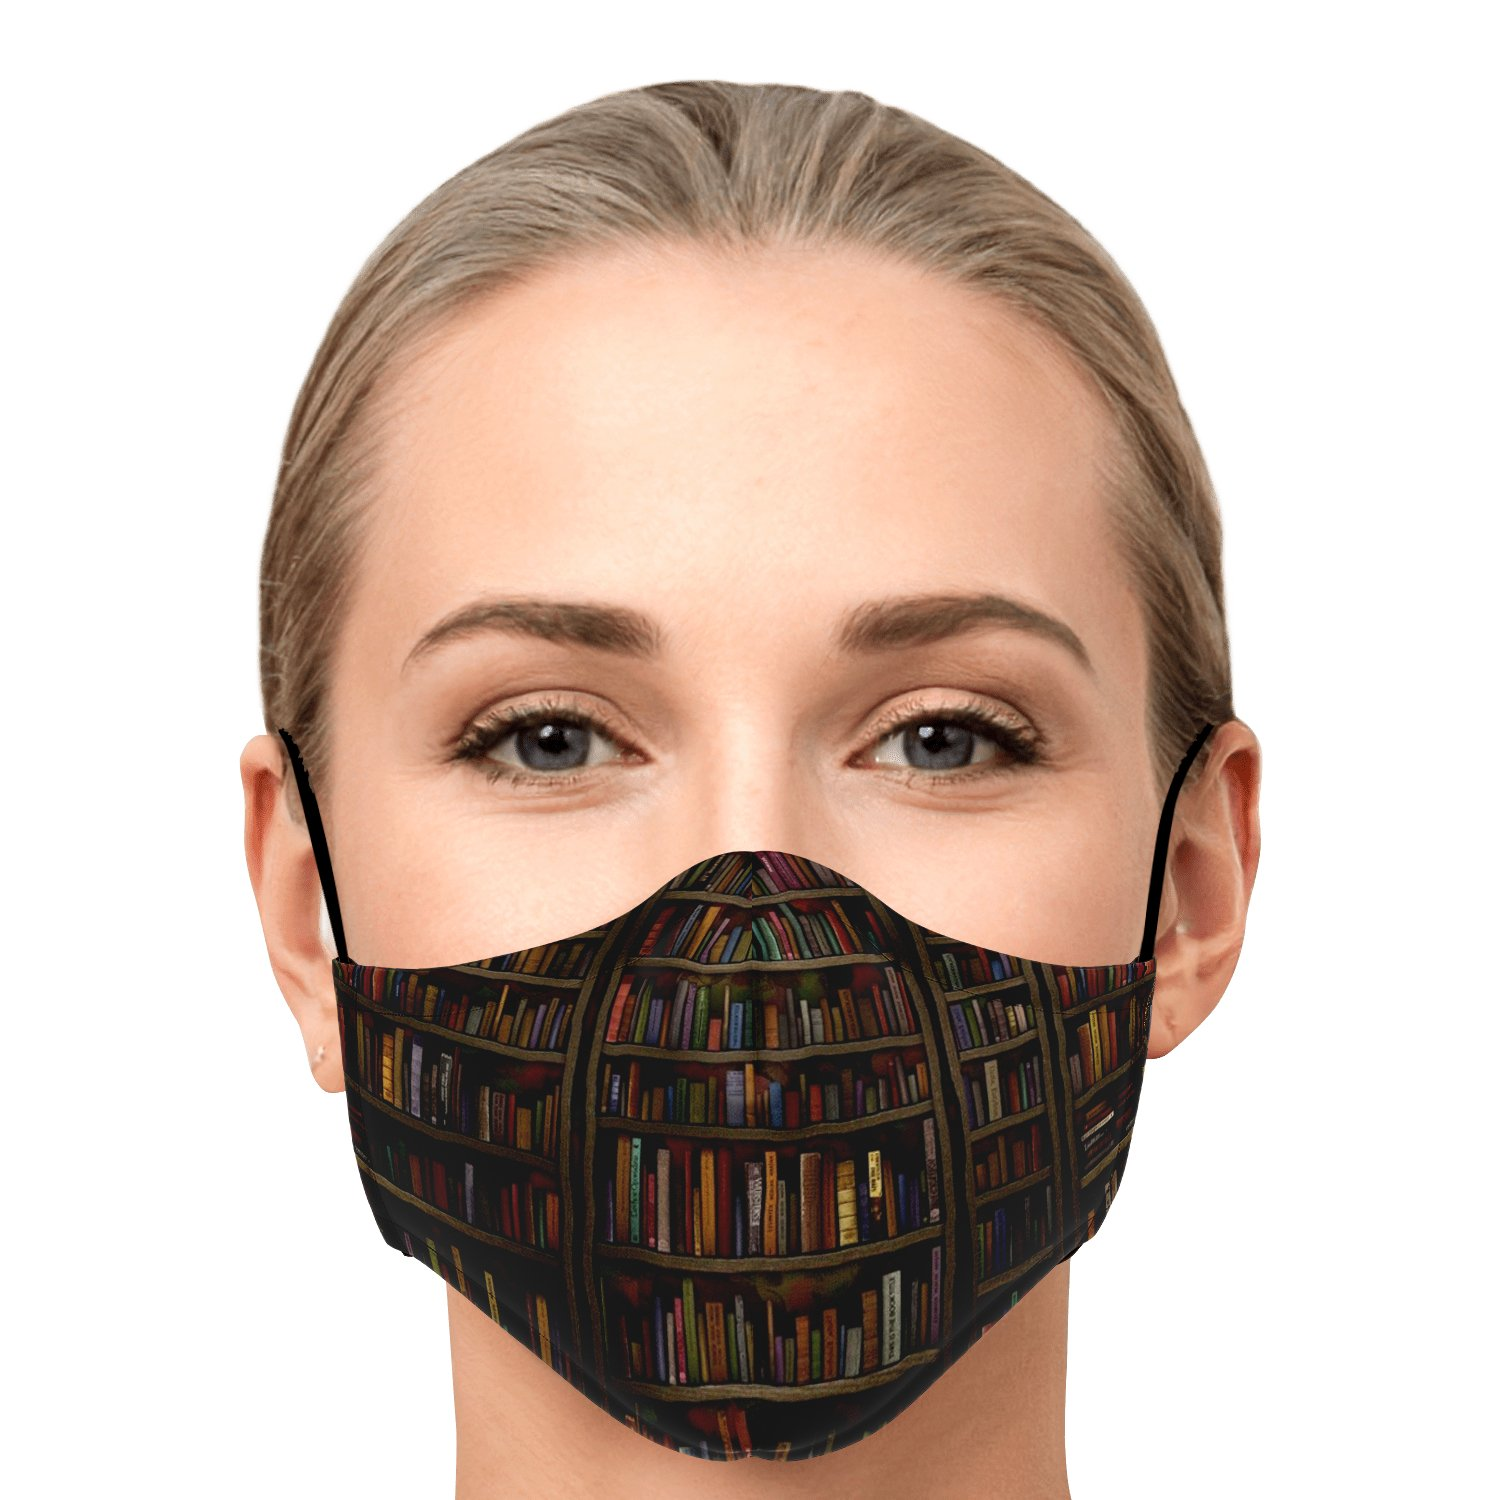 Librarian Old Book Lovers Face Mask 1